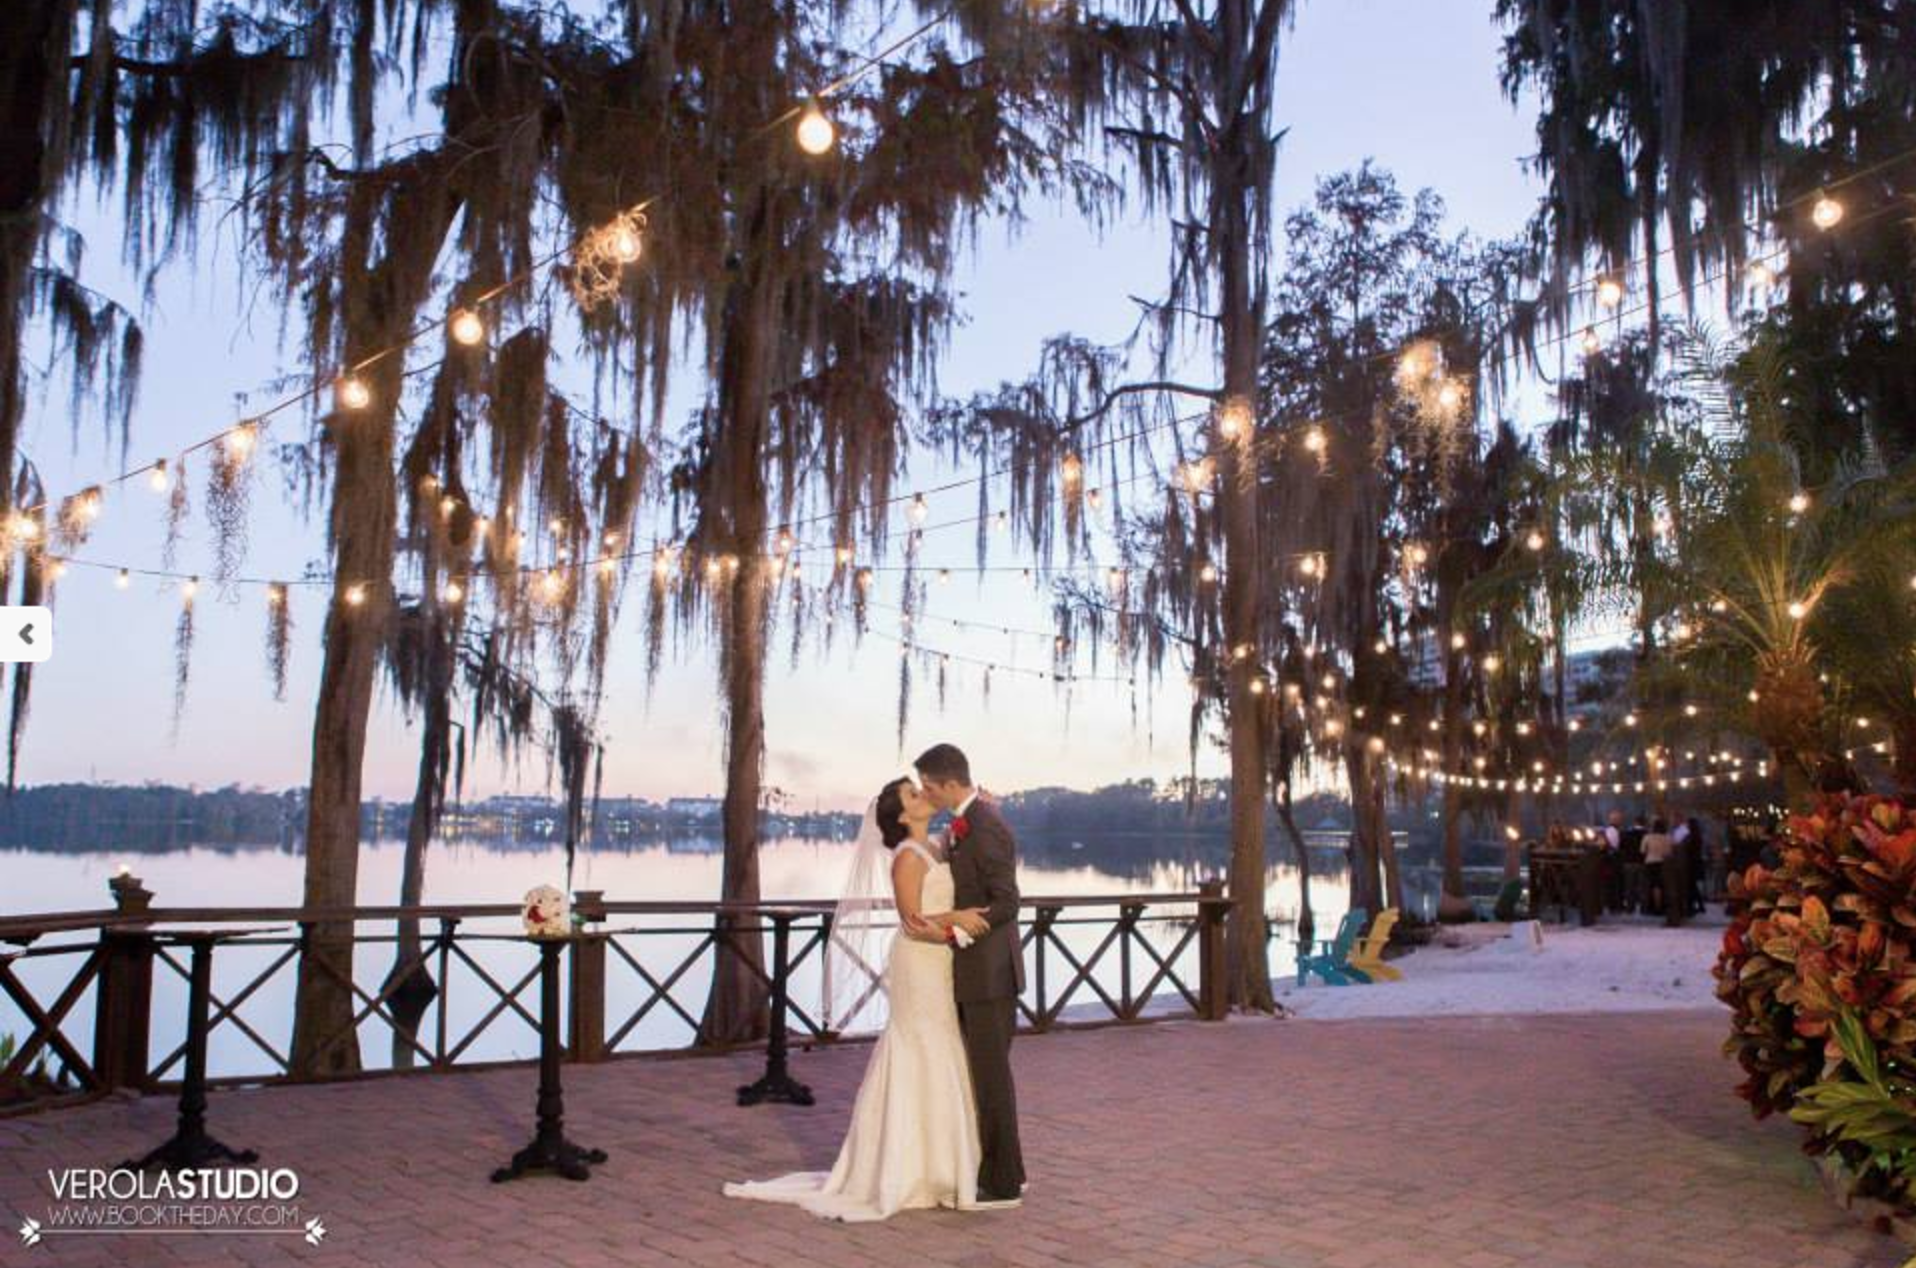 10 Unique Central Florida Wedding Venues: Florida Wedding Venue Wedding Tree At Reisefeber.org